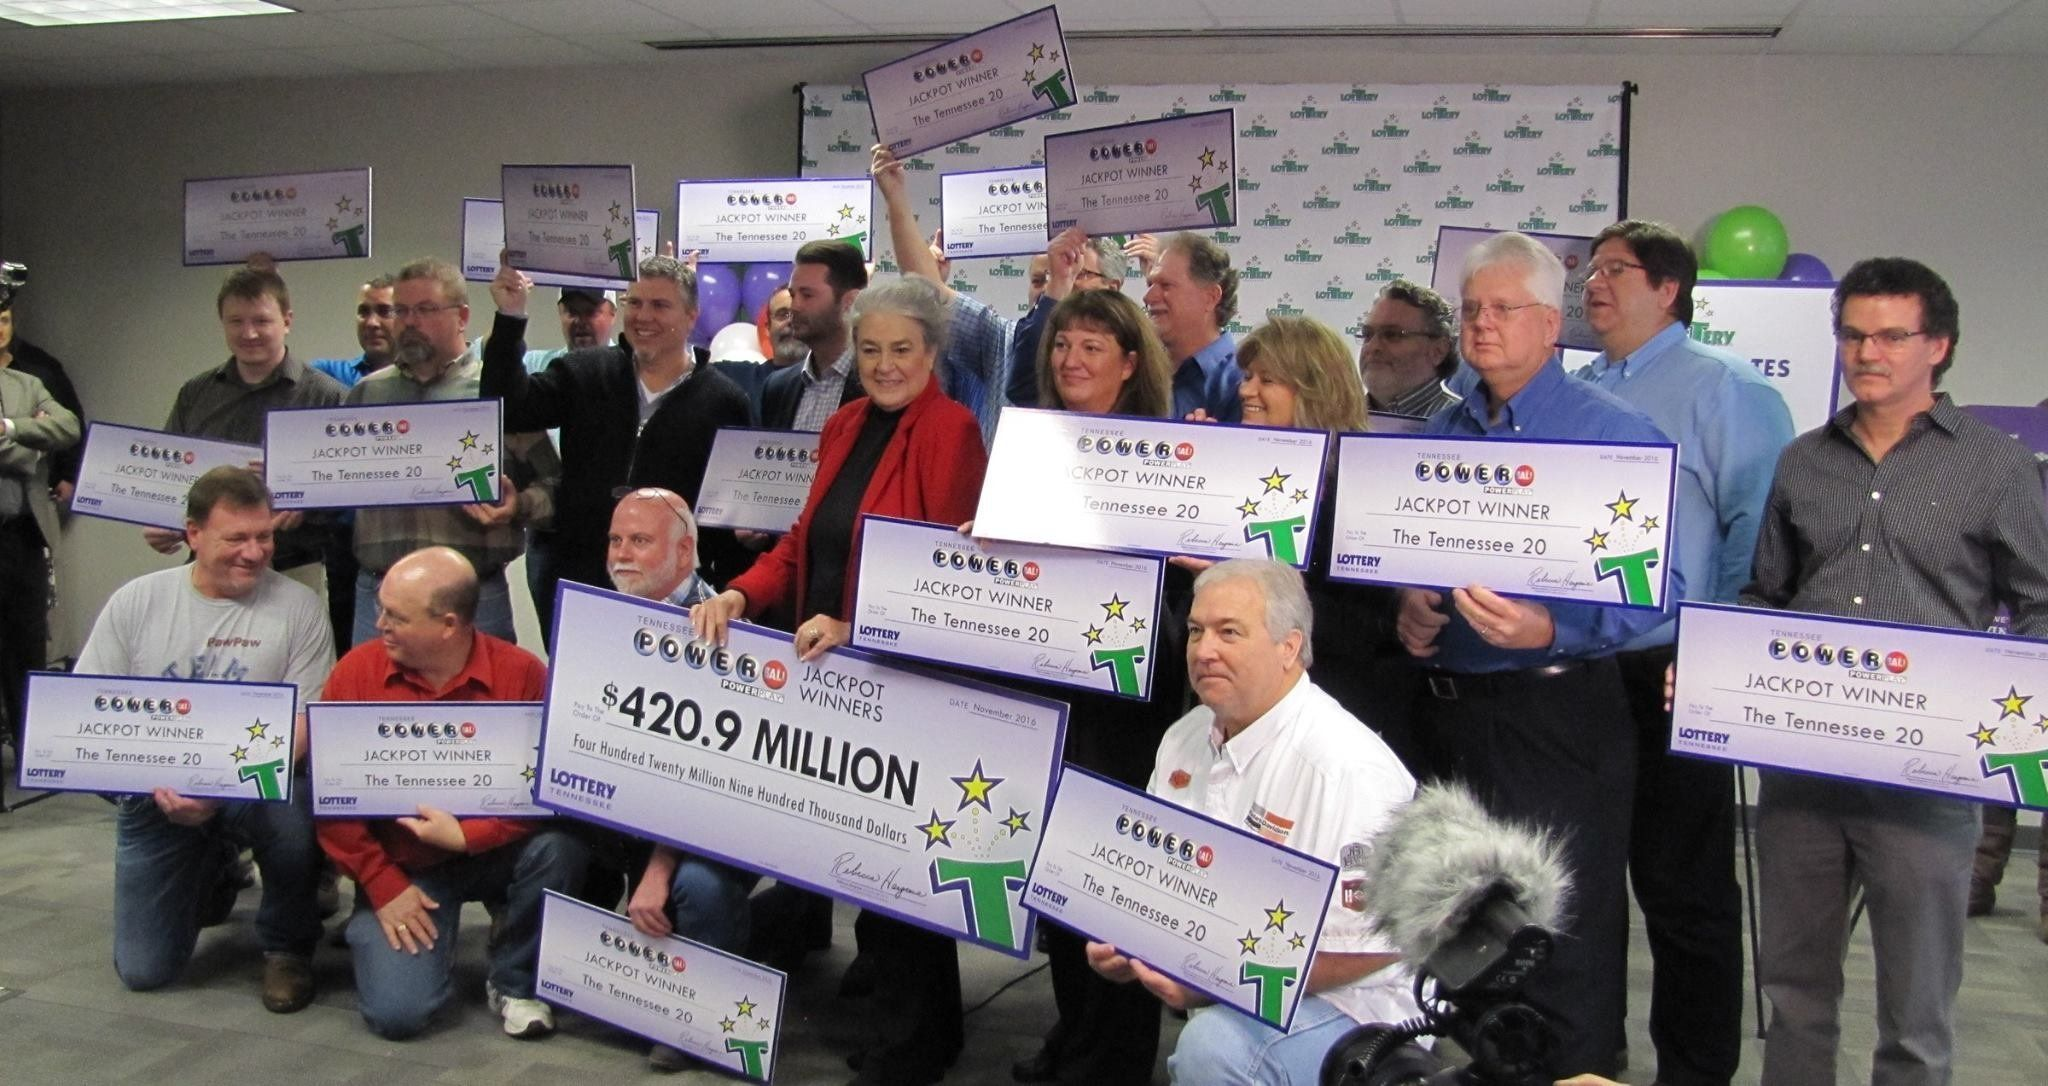 This group of 20 longtime coworkers will split a 4209 Powerball jackpot prize